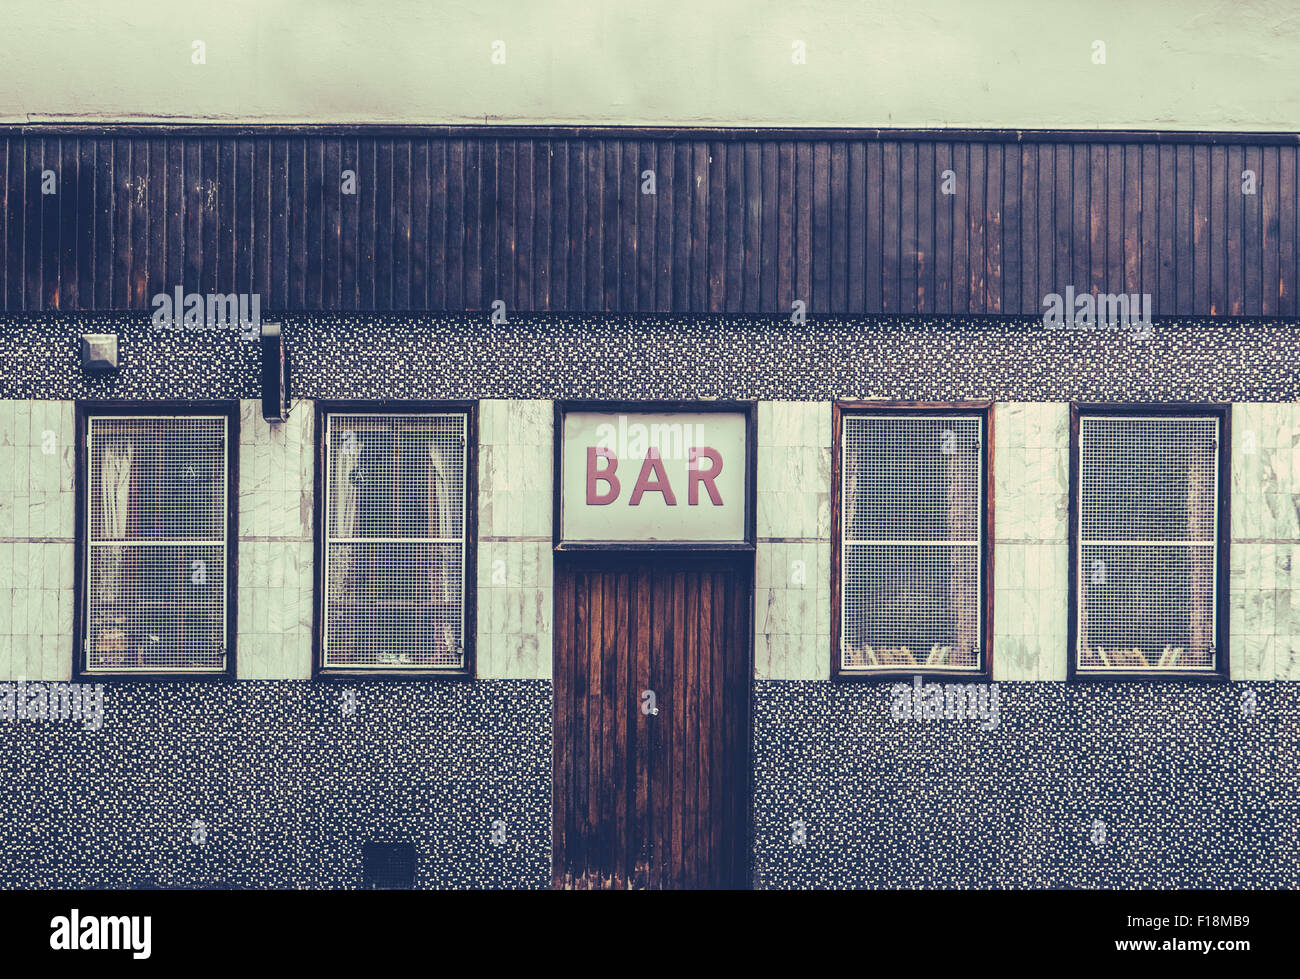 Retro Filtered Image Of A Grungy And Seedy Bar - Stock Image